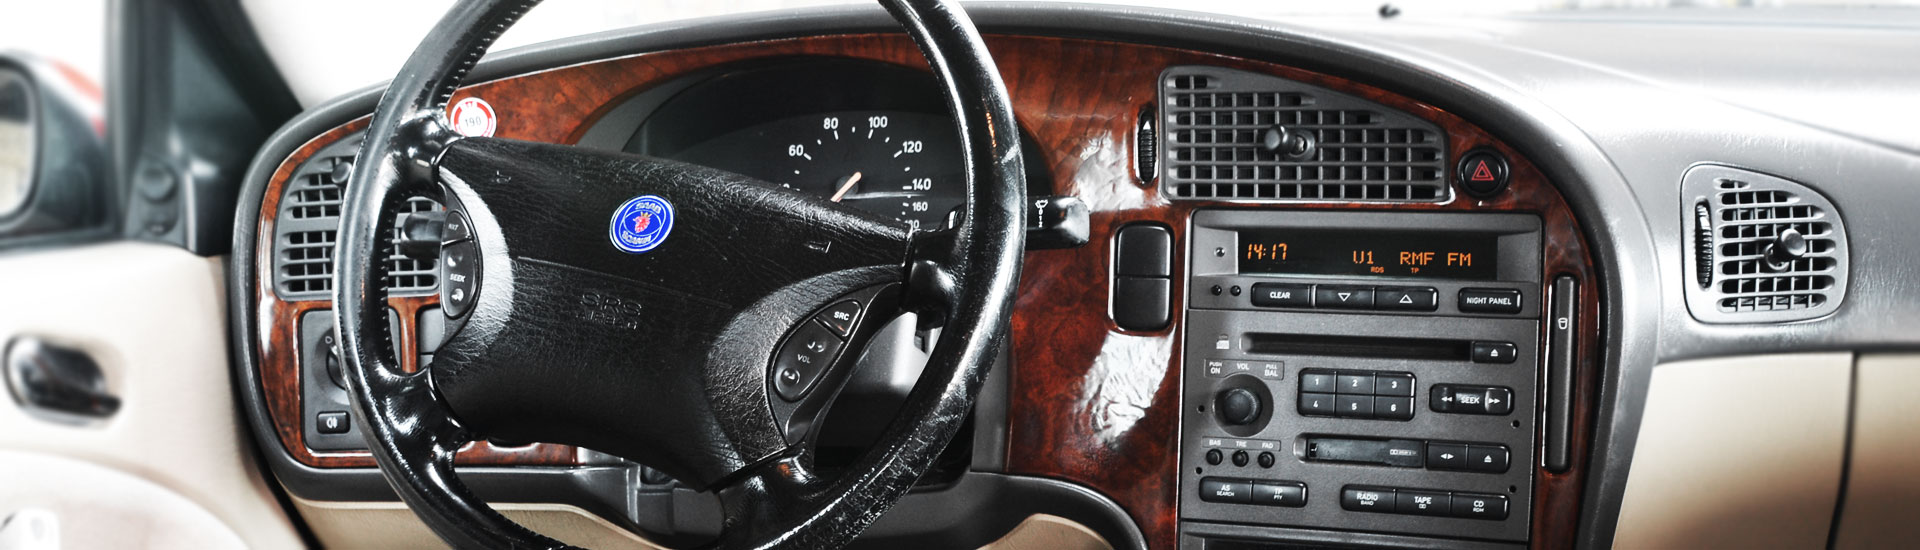 1997 Saab 9000 Custom Dash Kits